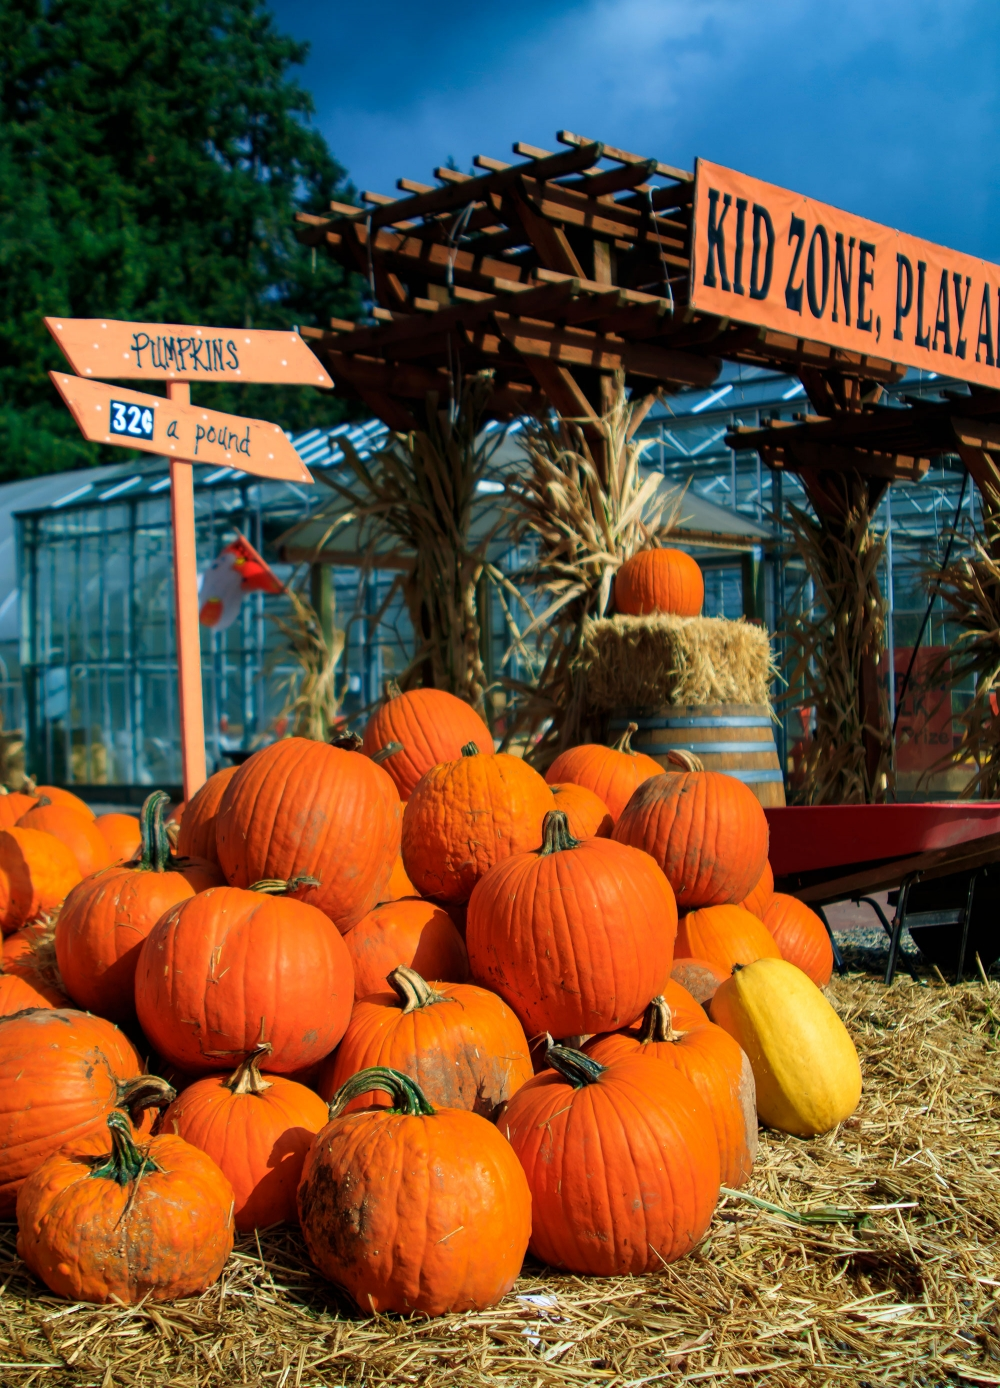 Kid Zone Play Area and a big pile of pumpkins stacked up for sale at Fir Point Farms October Harvest Festival